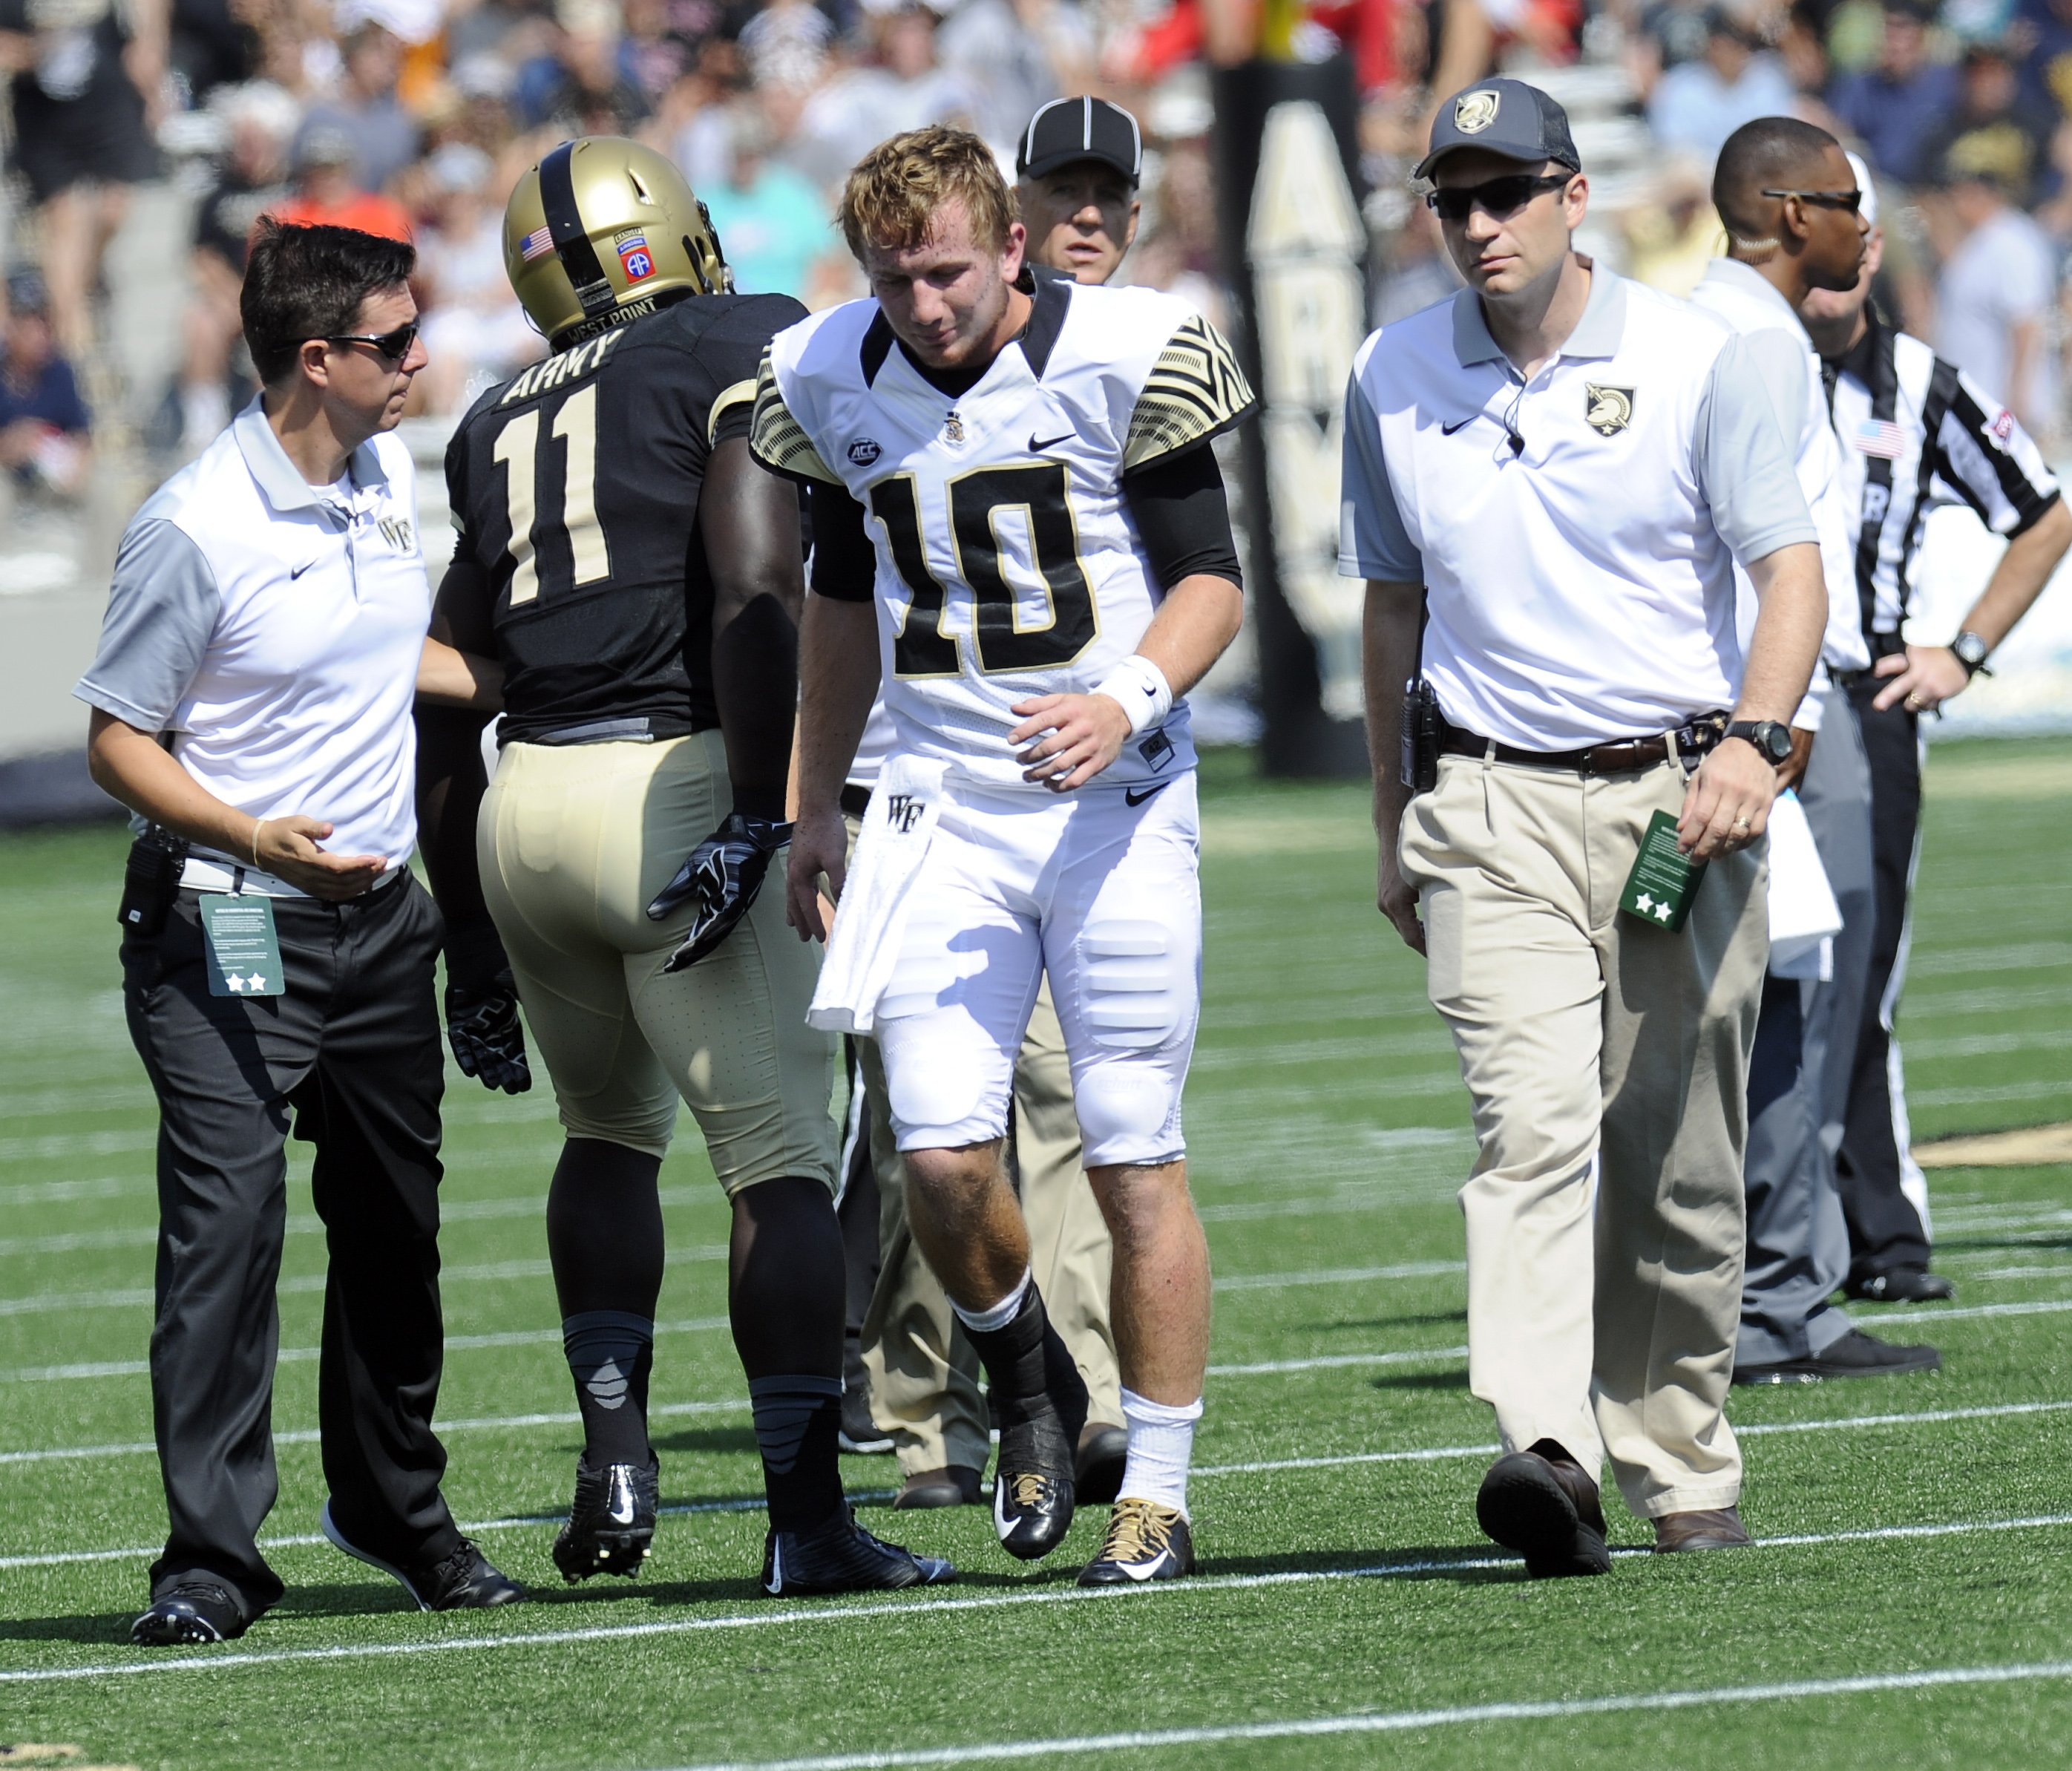 Wake Forest quarterback John Wolford (10) leaves the game limping later to return while playing against Army during an NCAA college football game on Saturday, Sept. 19, 2015, in West Point, N.Y. (AP Photo/Hans Pennink)